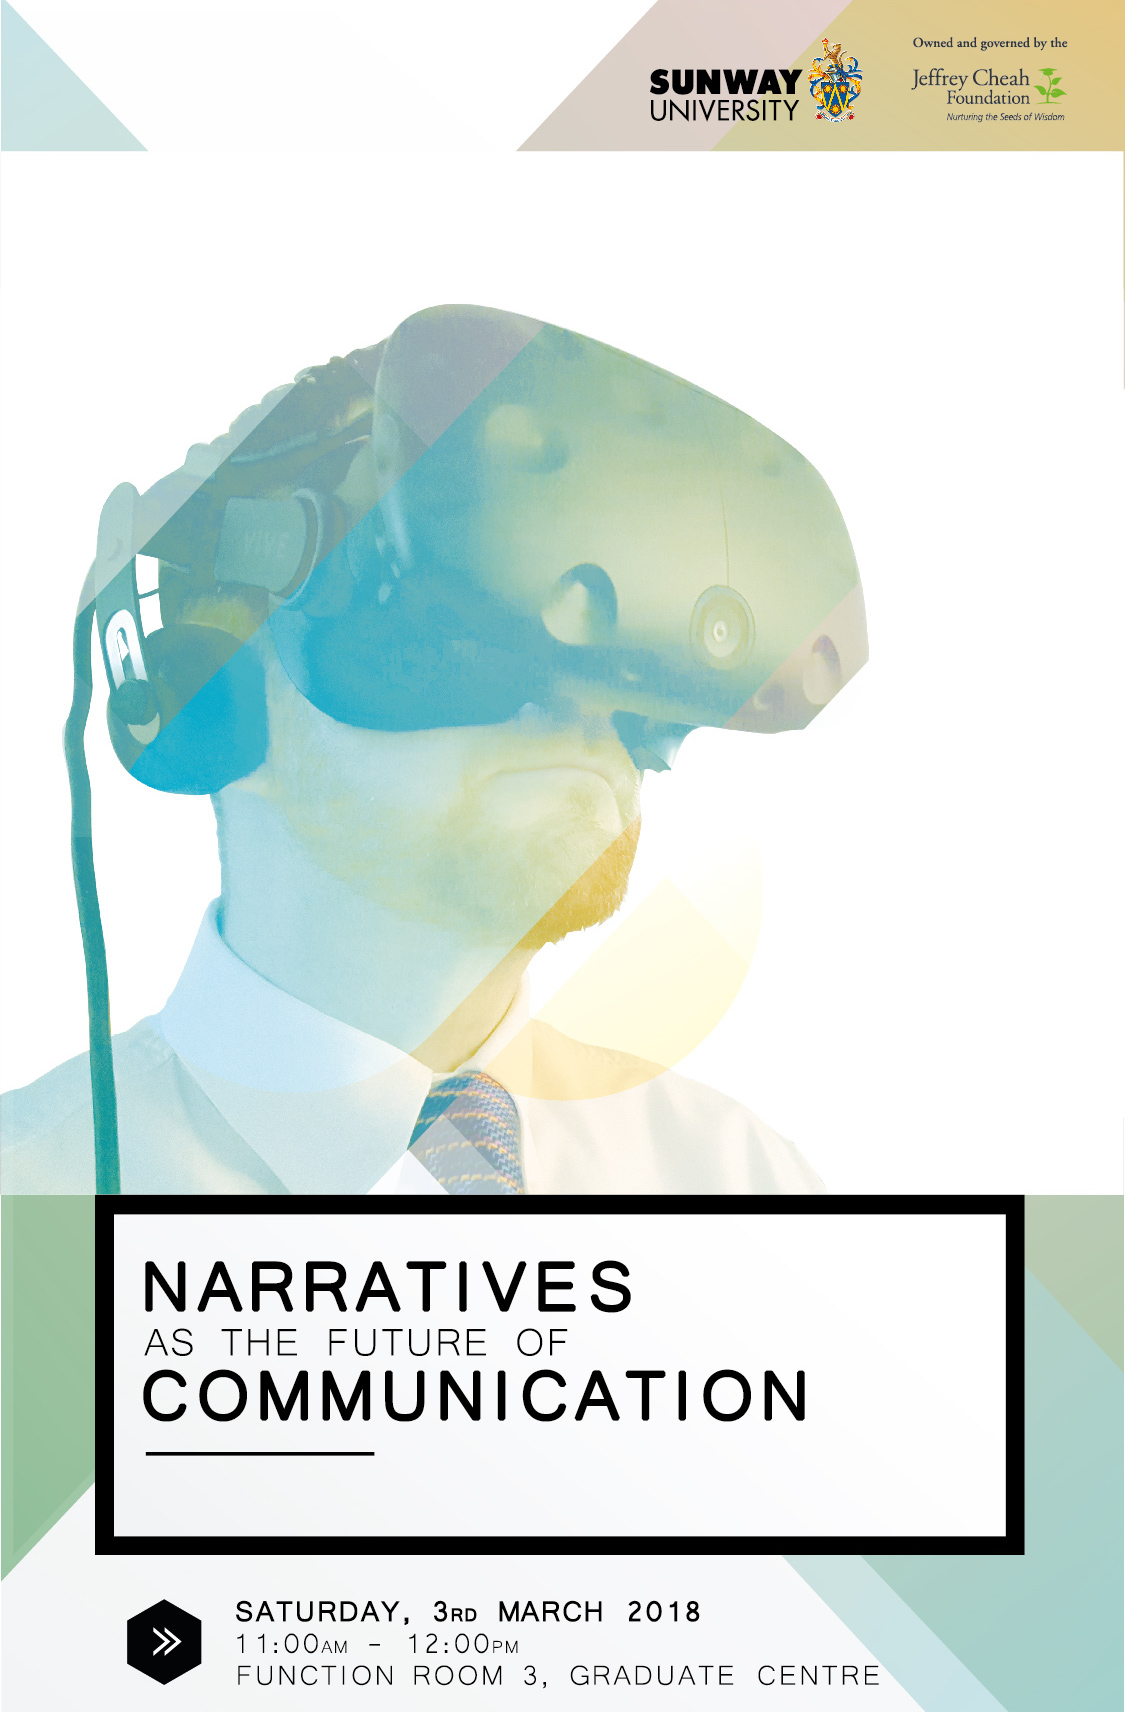 Narratives as the Future of Communication